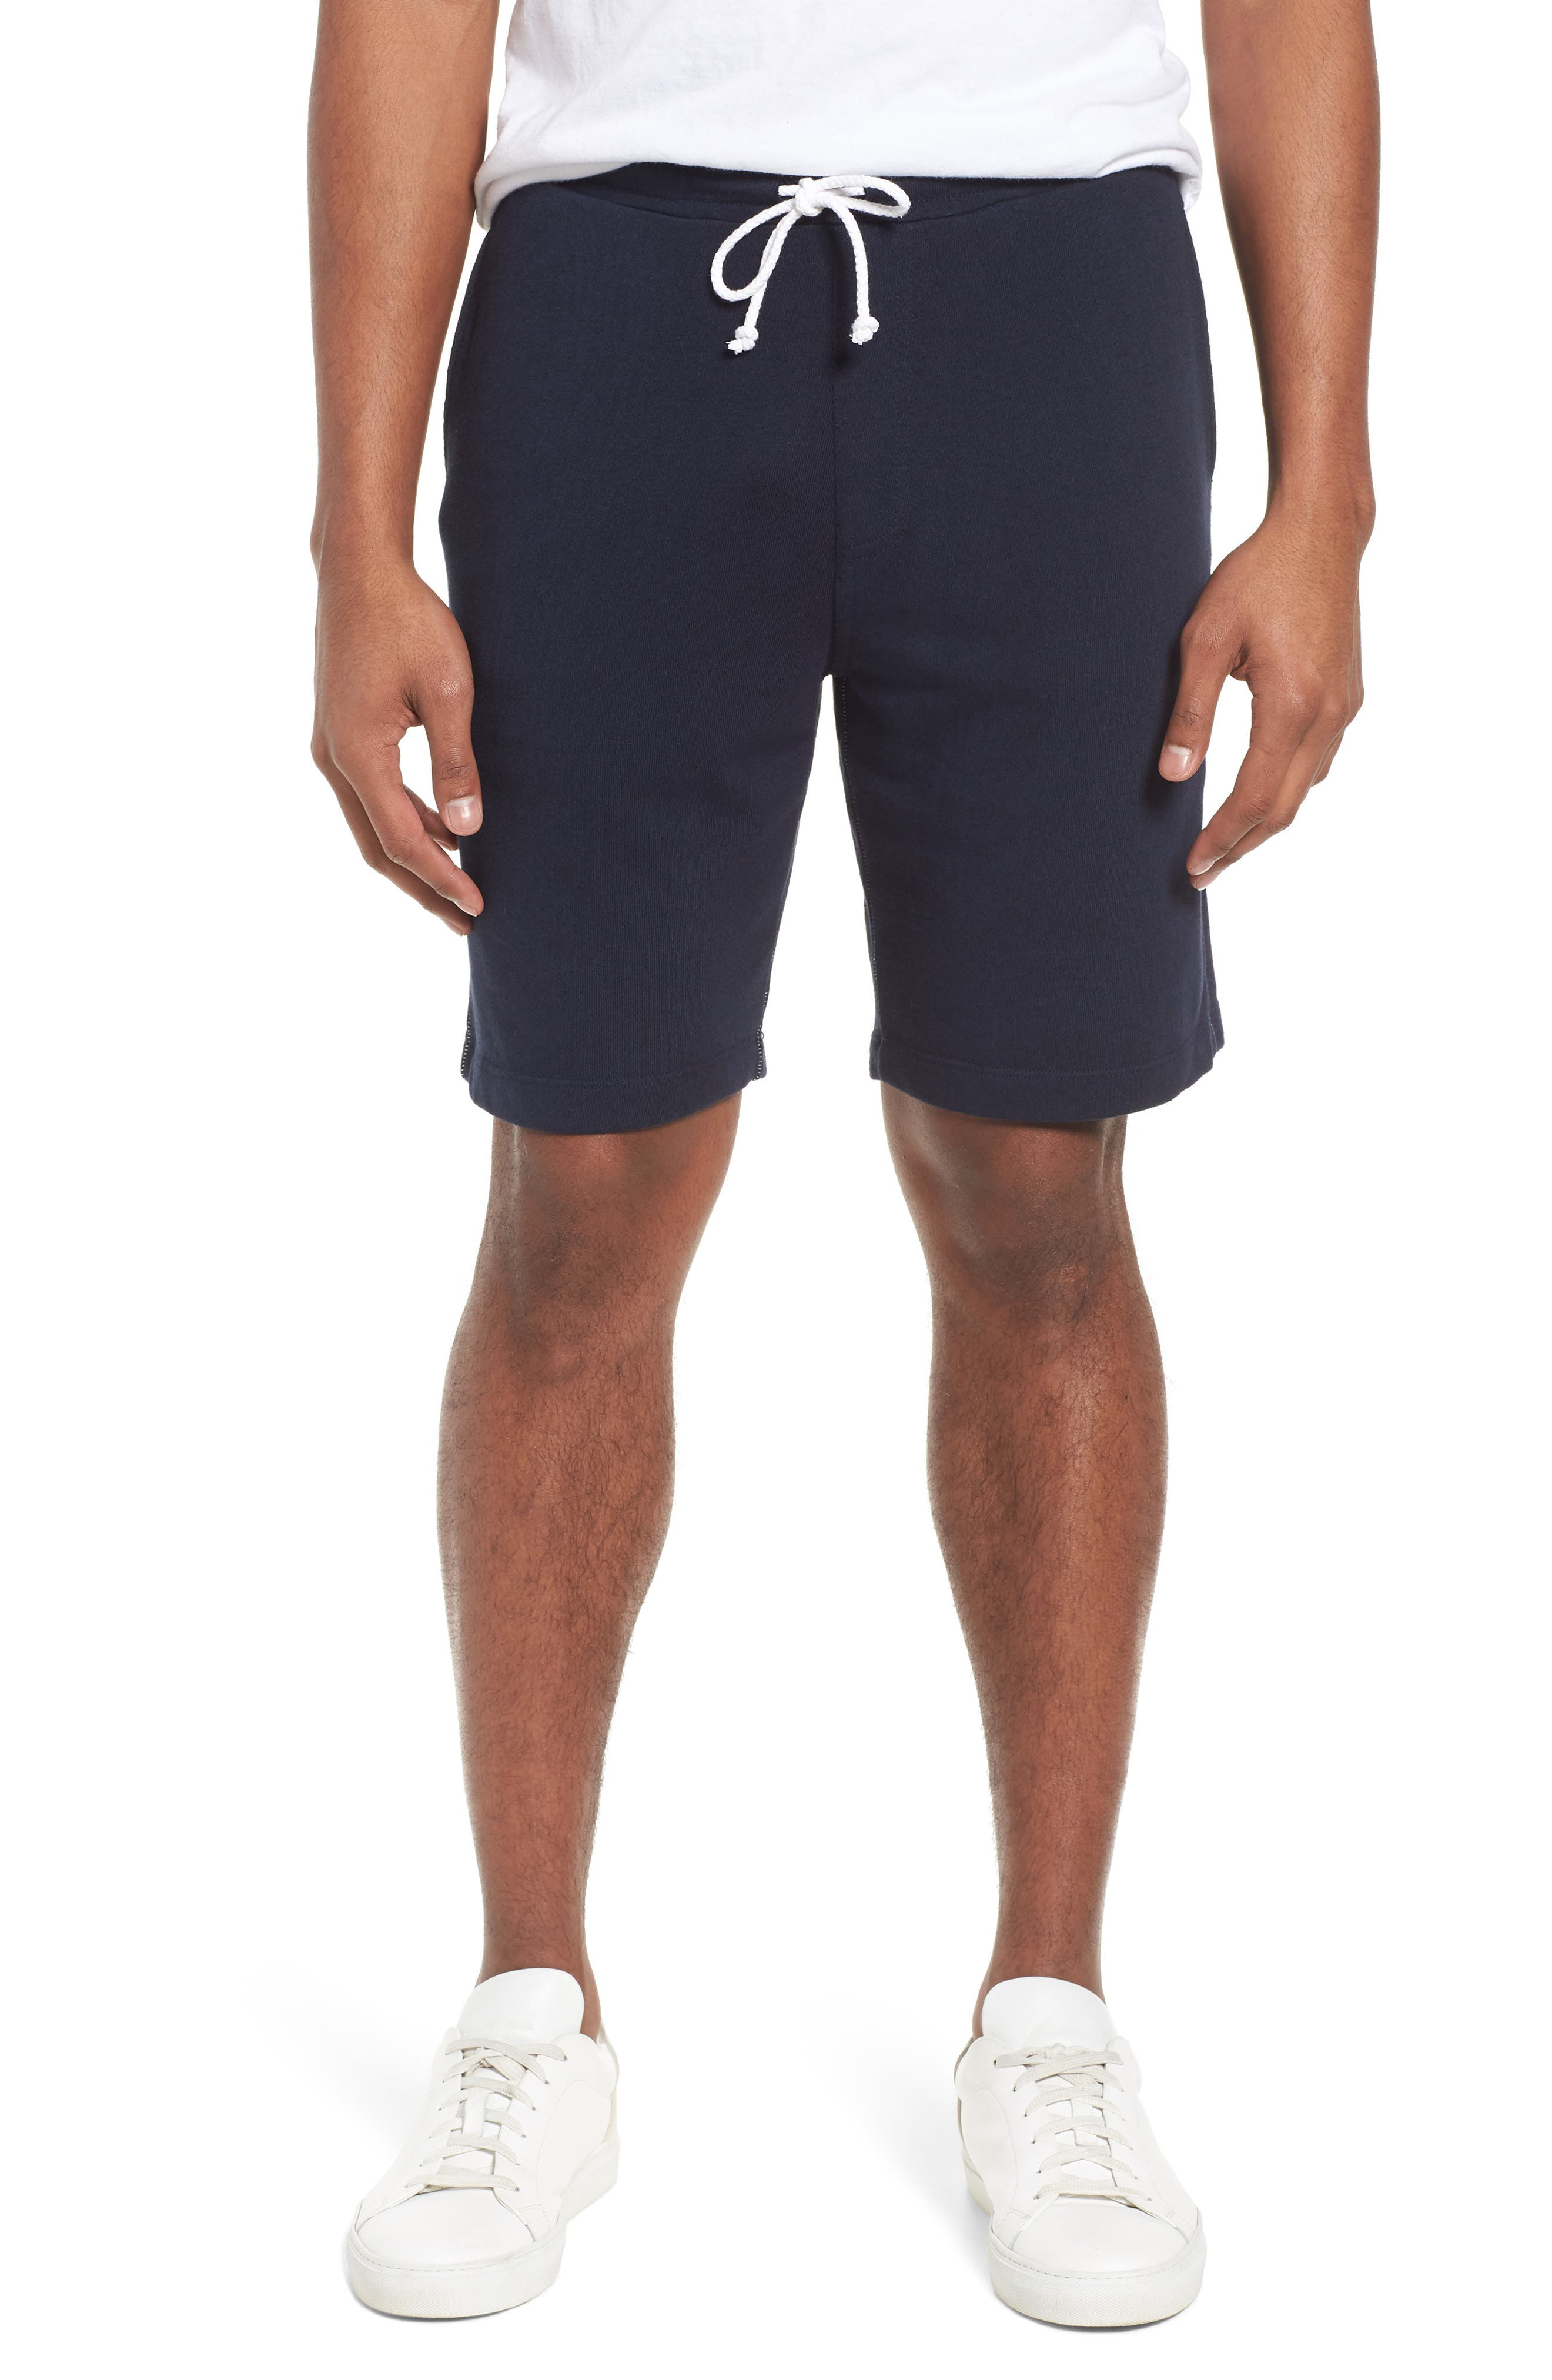 Lounge Sweat Shorts,                         Main,                         color, Navy